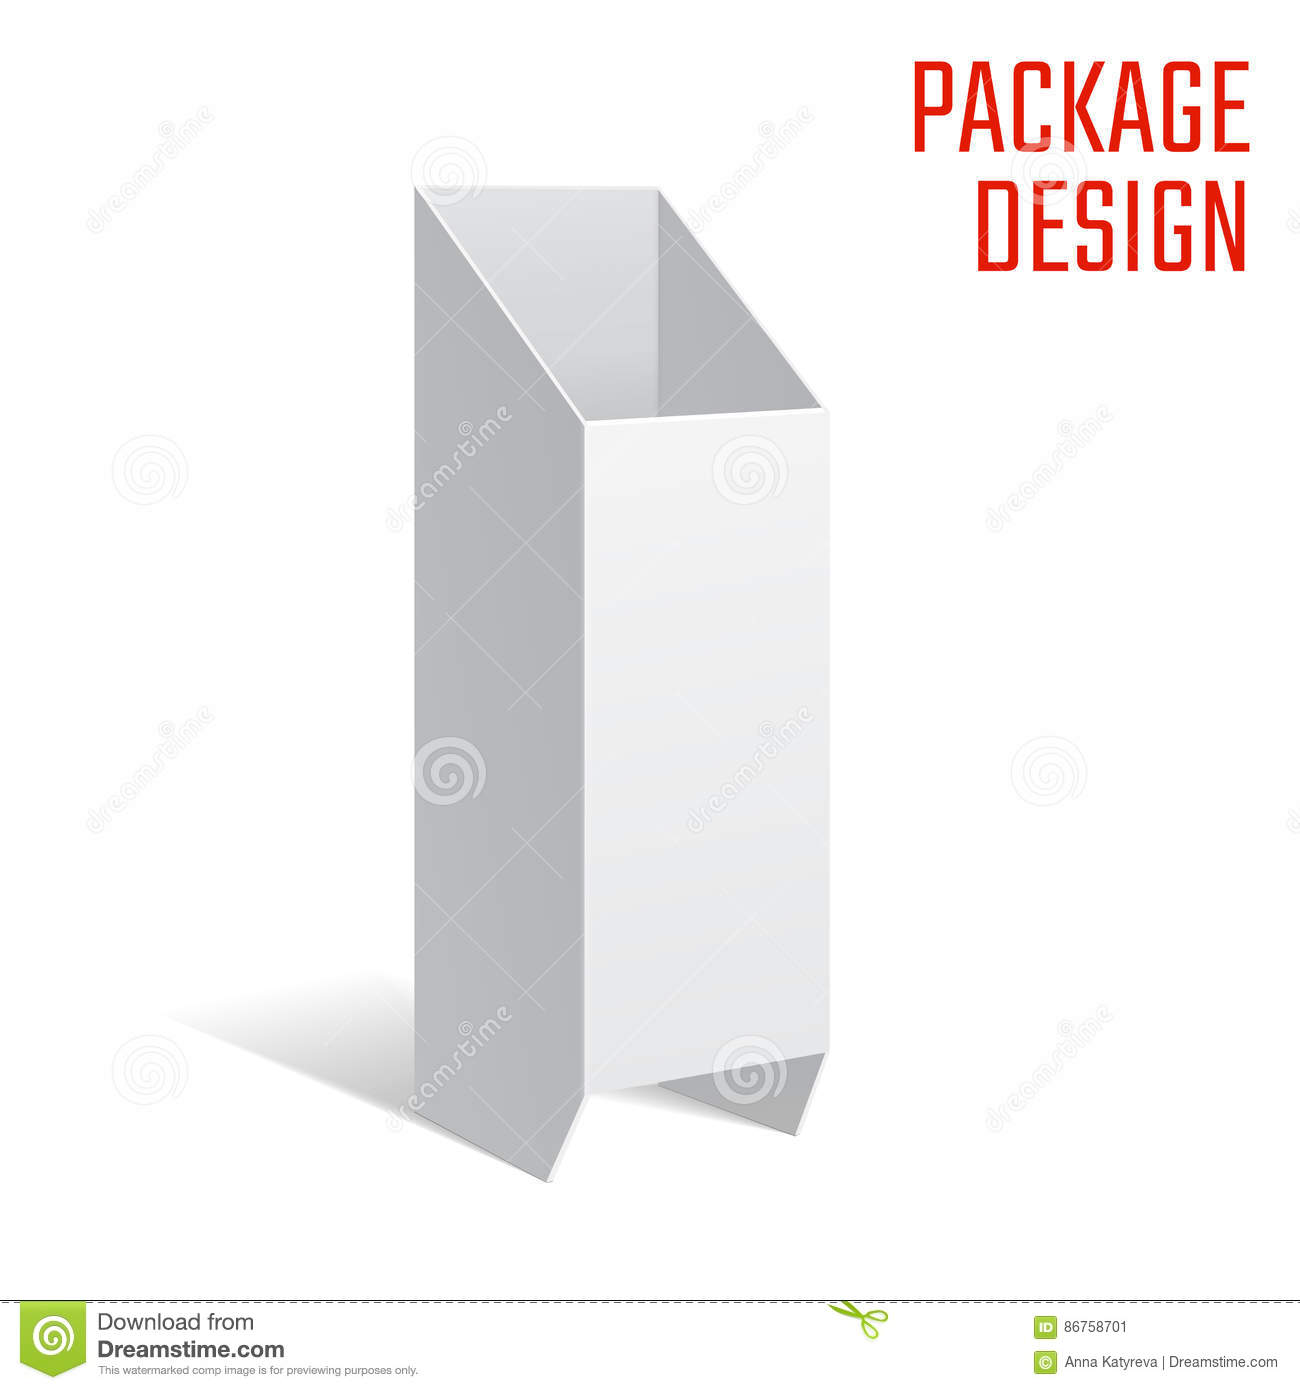 Vector Illustration Of Clear Craft Box For Design Website Background Banner Retail Folding Package Template Fold Pack Blank Your Brand On It